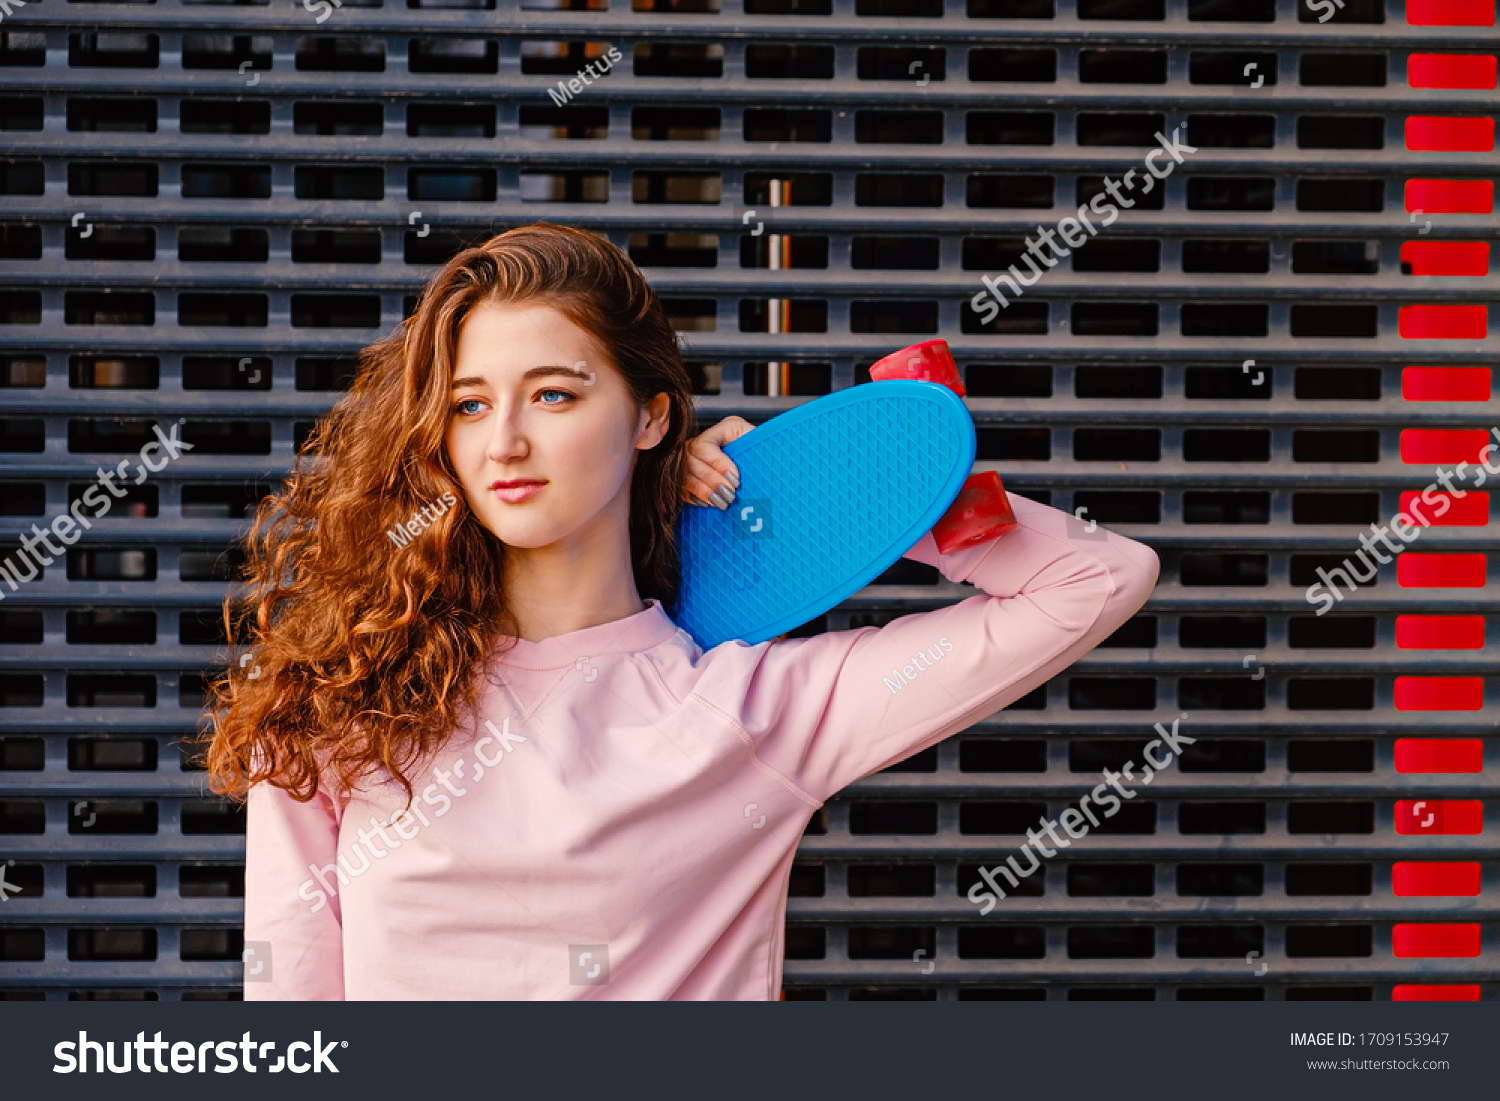 A girl with long curly brown hair holds a blue skateboard on her shoulder. She stands with blank expression on her face in front of an iron grating in a skateboard park.